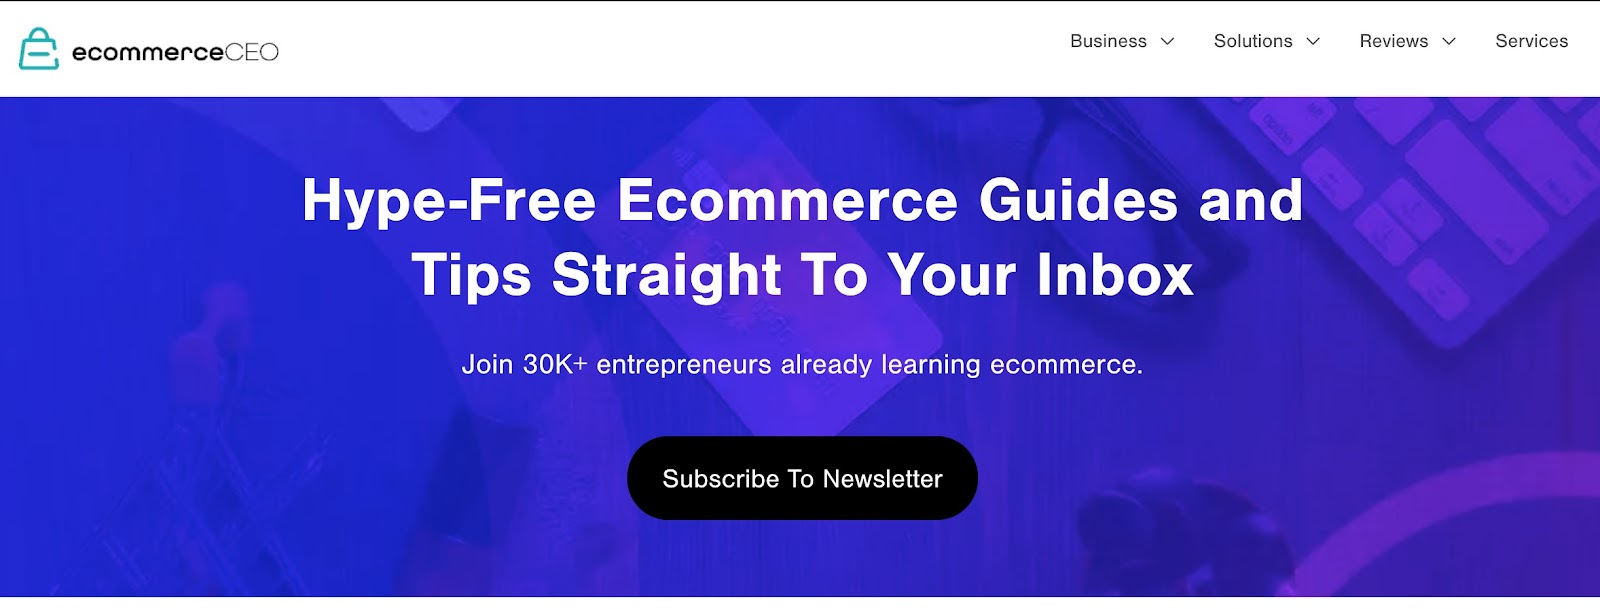 ecommerce ceo blog